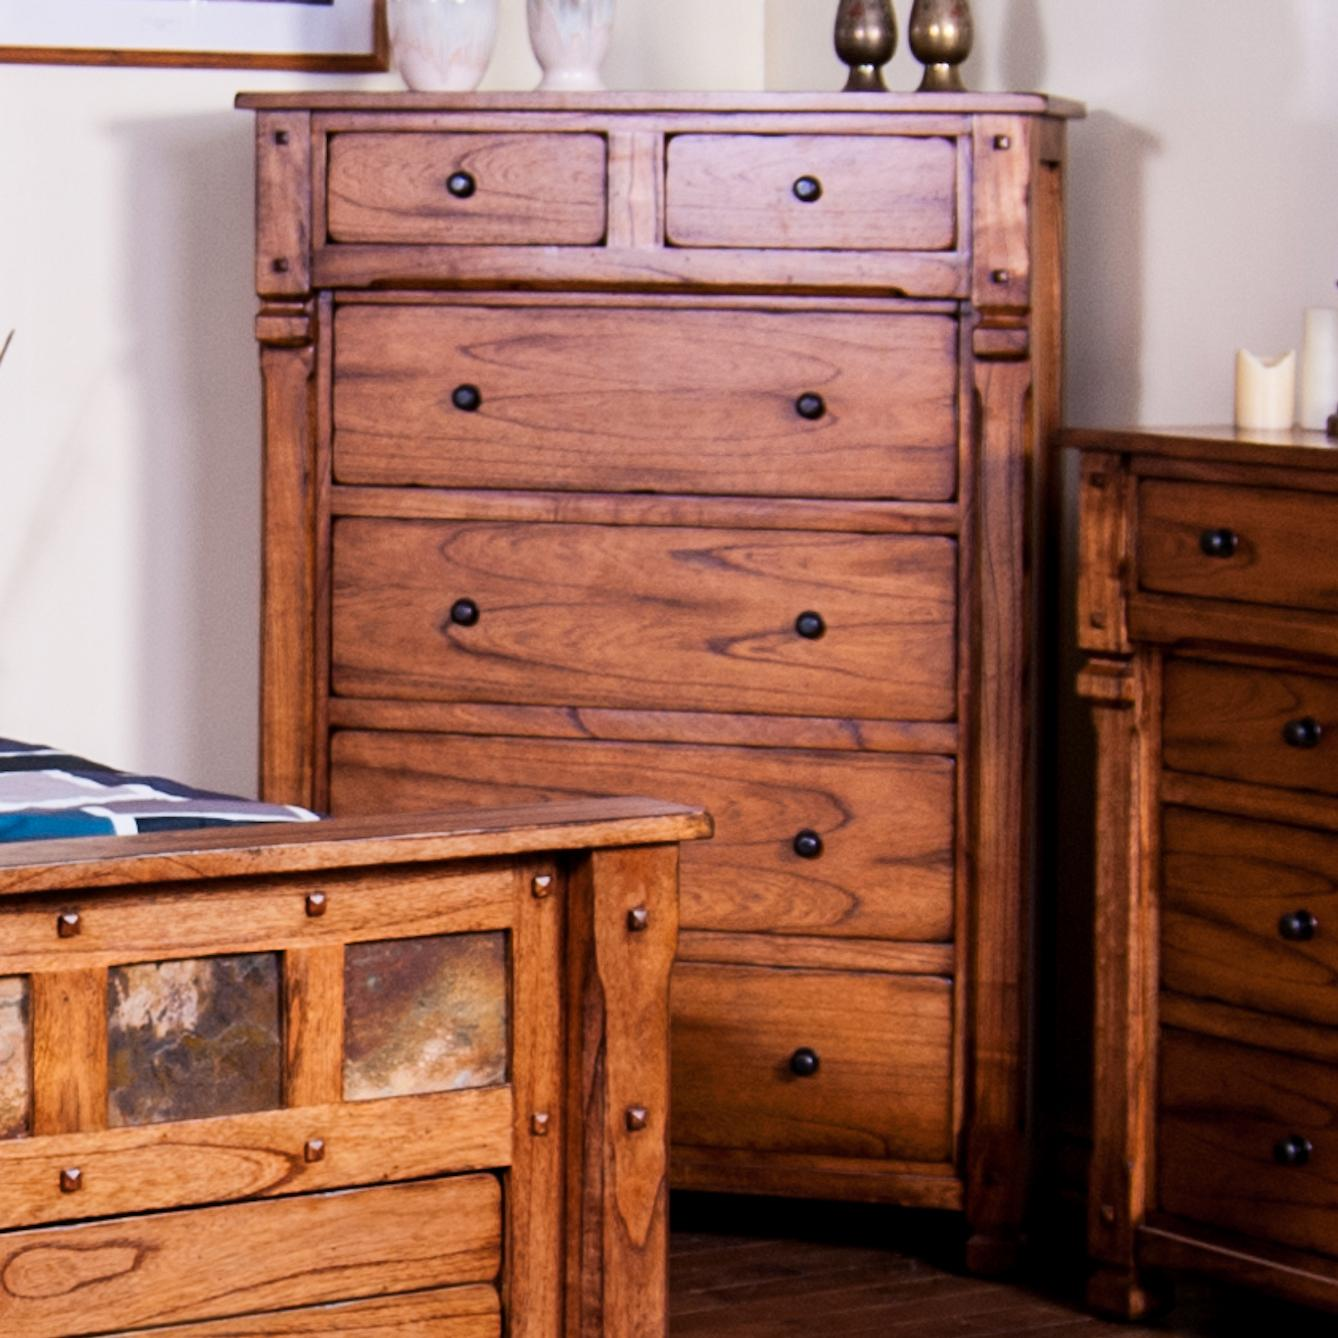 Rustic chest with hideaway drawer by sunny designs wolf and gardiner wolf furniture for Sunny designs bedroom furniture